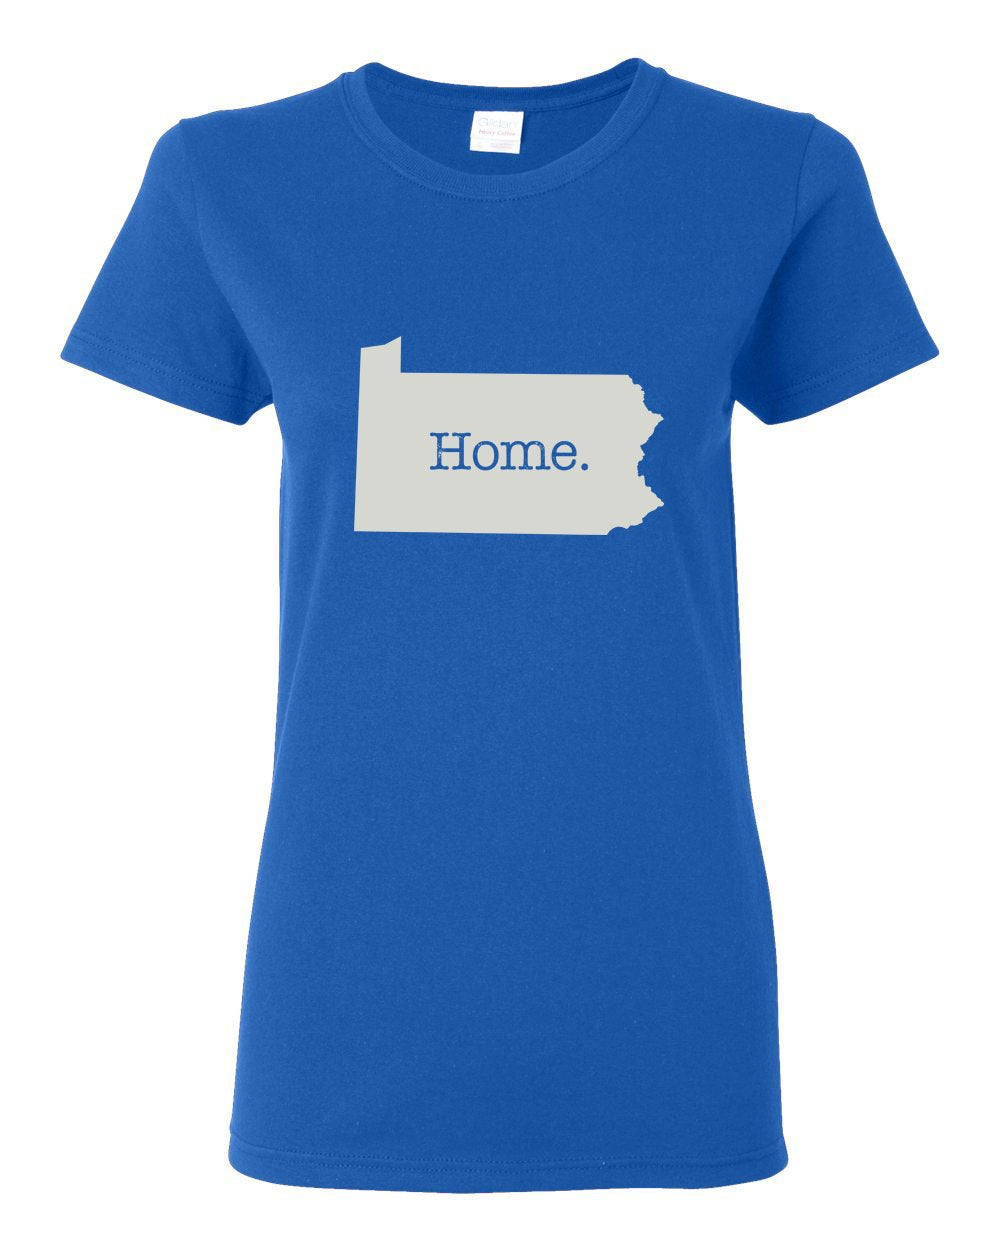 PA Home LADIES Missy-Fit T-Shirt